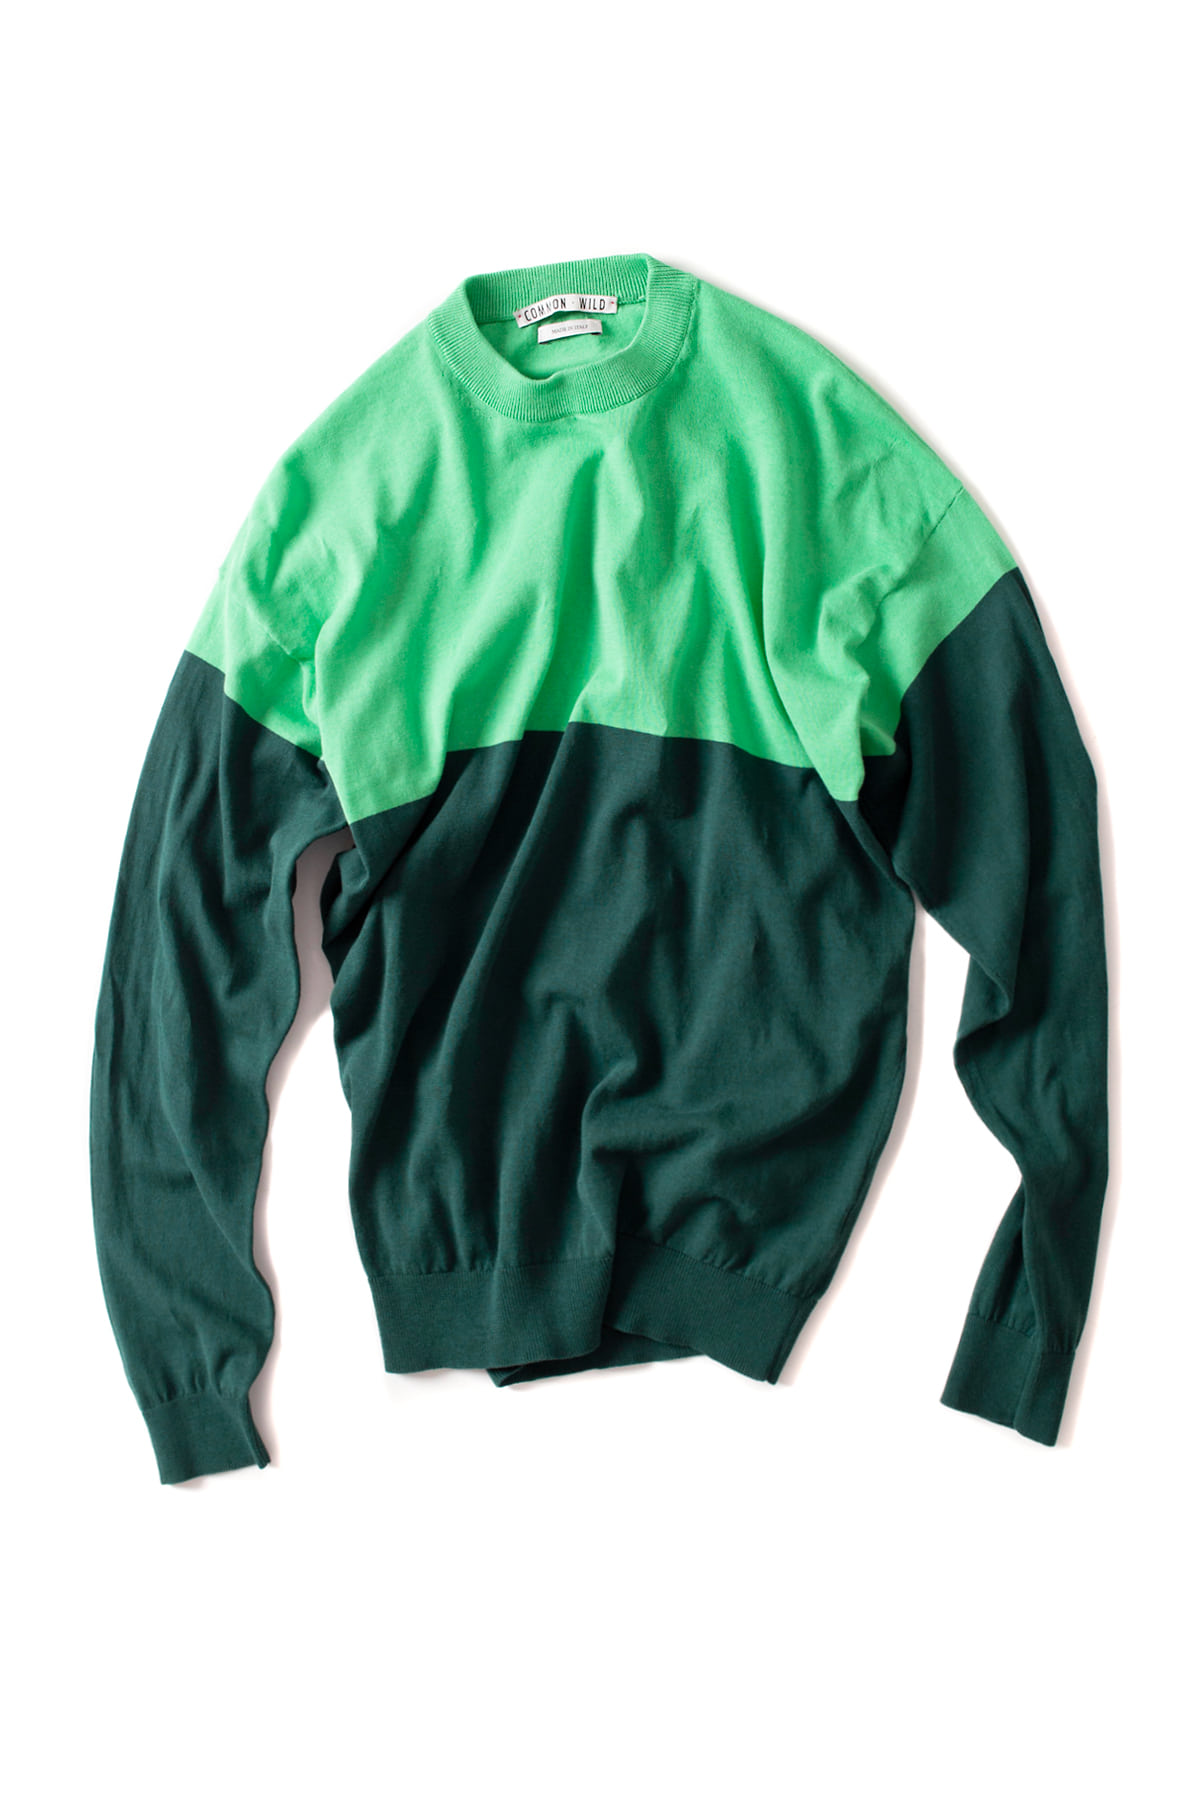 COMMON WILD : Round Neck Sweater (Green)